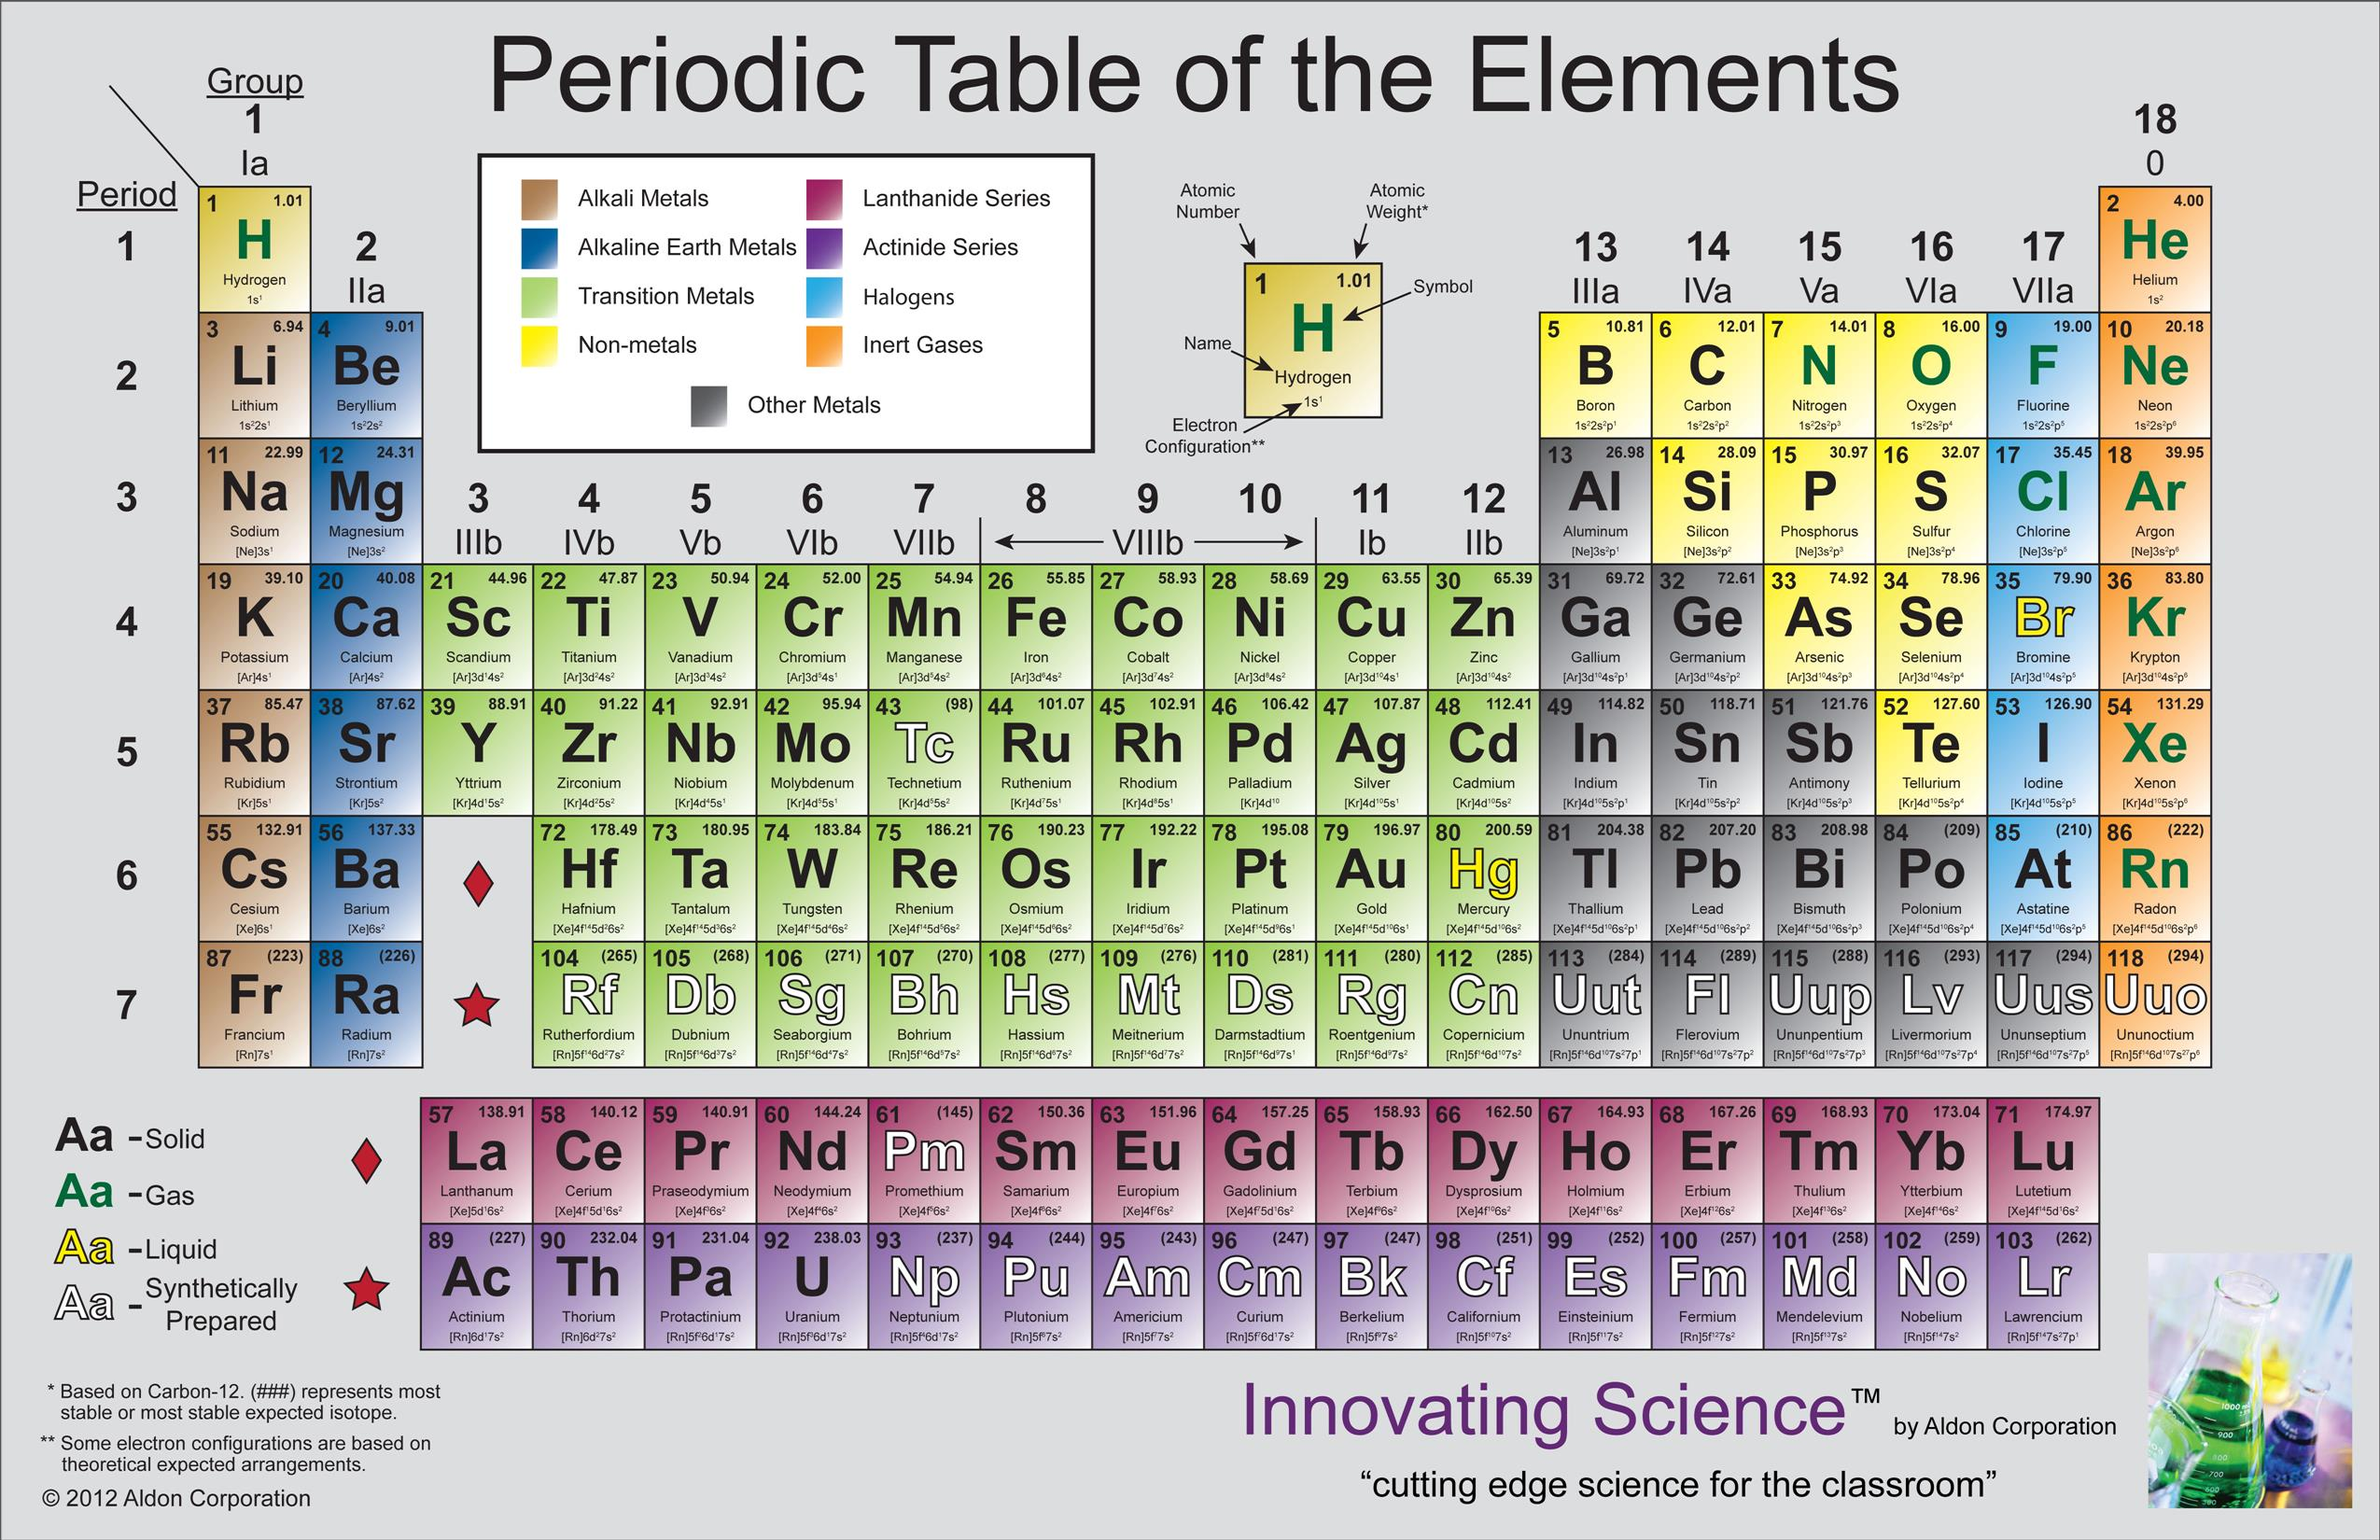 Periodic tables of the elements in american englishmichael canov amer2g gamestrikefo Image collections